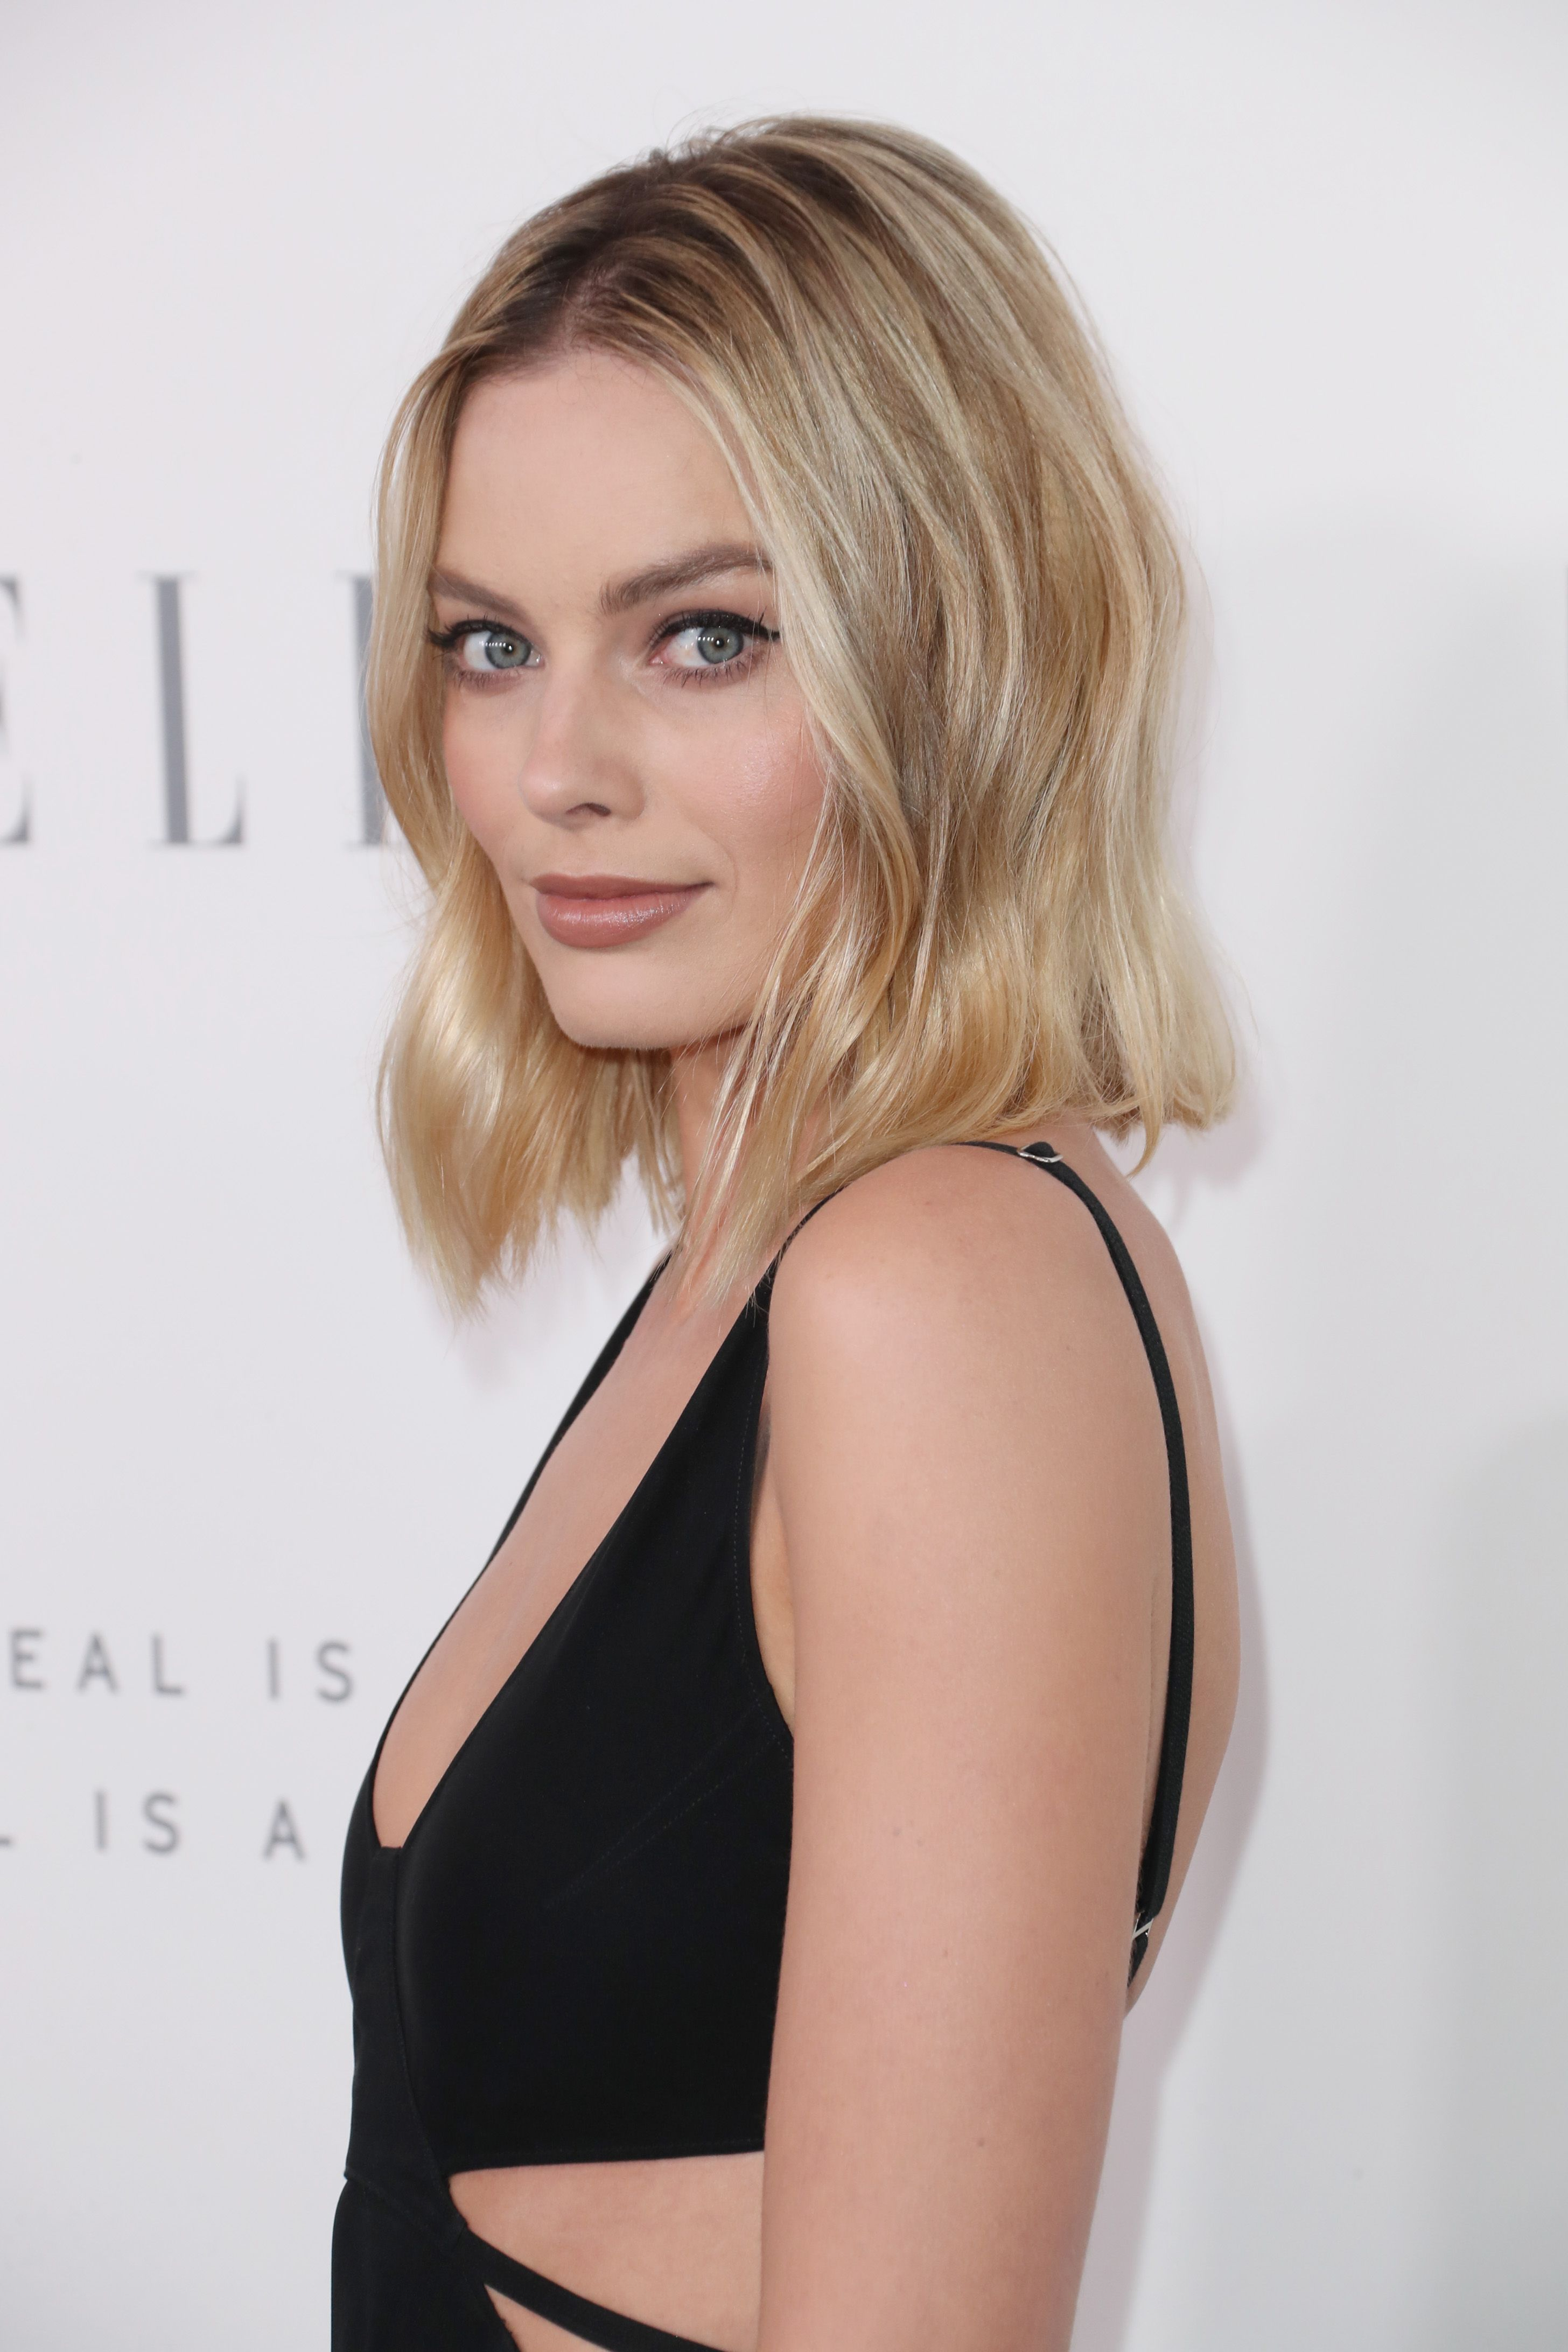 Margot Robbie Is Ready To Support Her Leading Man Margot Robbie Hair Bombshell Hair Margot Robbie Makeup